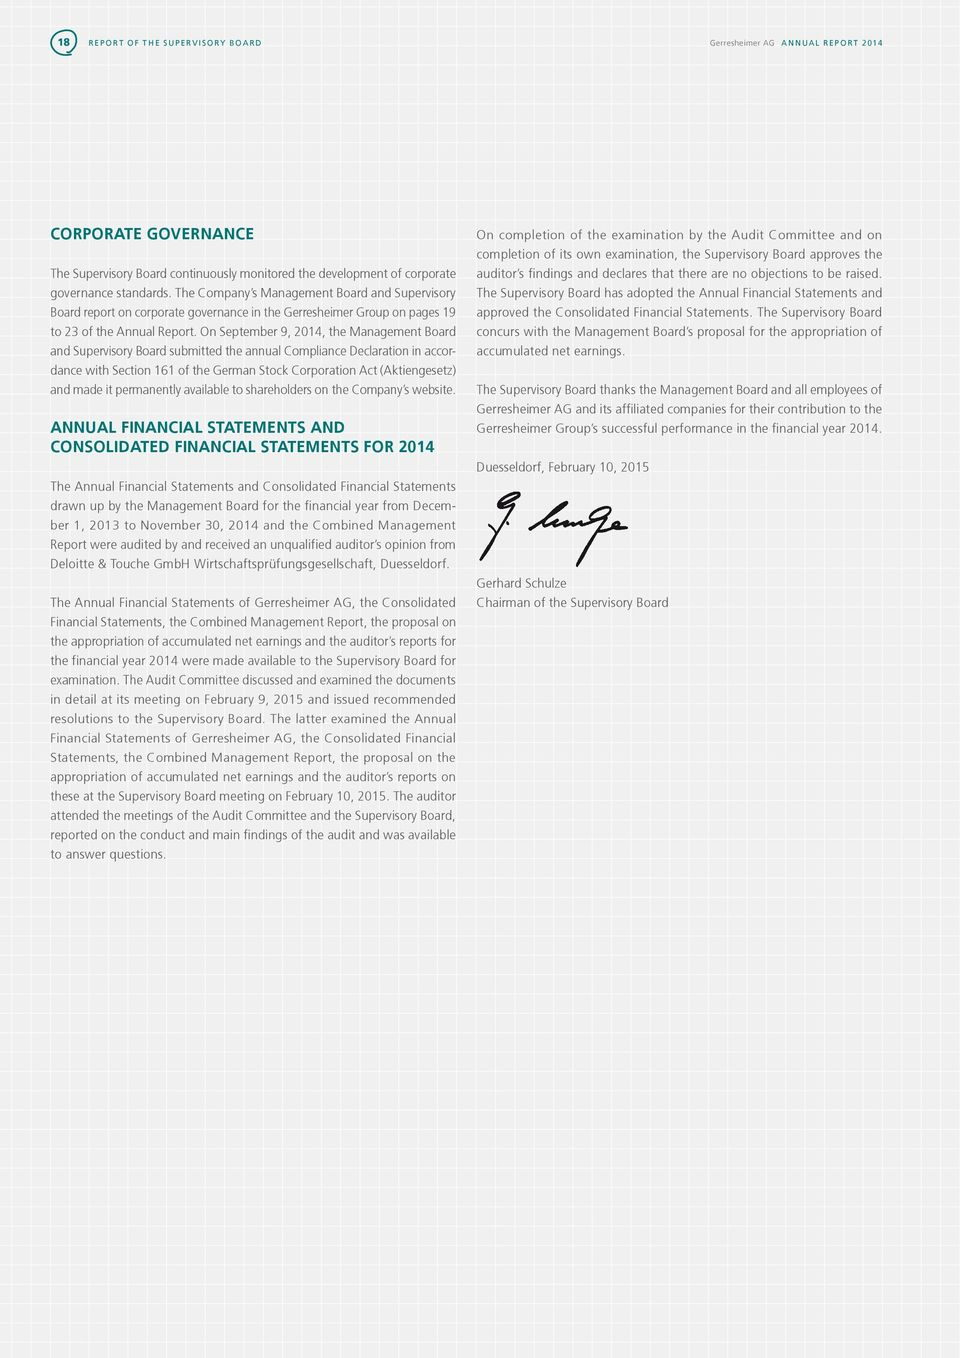 On September 9, 2014, the Management Board and Supervisory Board submitted the annual Compliance Declaration in accordance with Section 161 of the German Stock Corporation Act (Aktiengesetz) and made